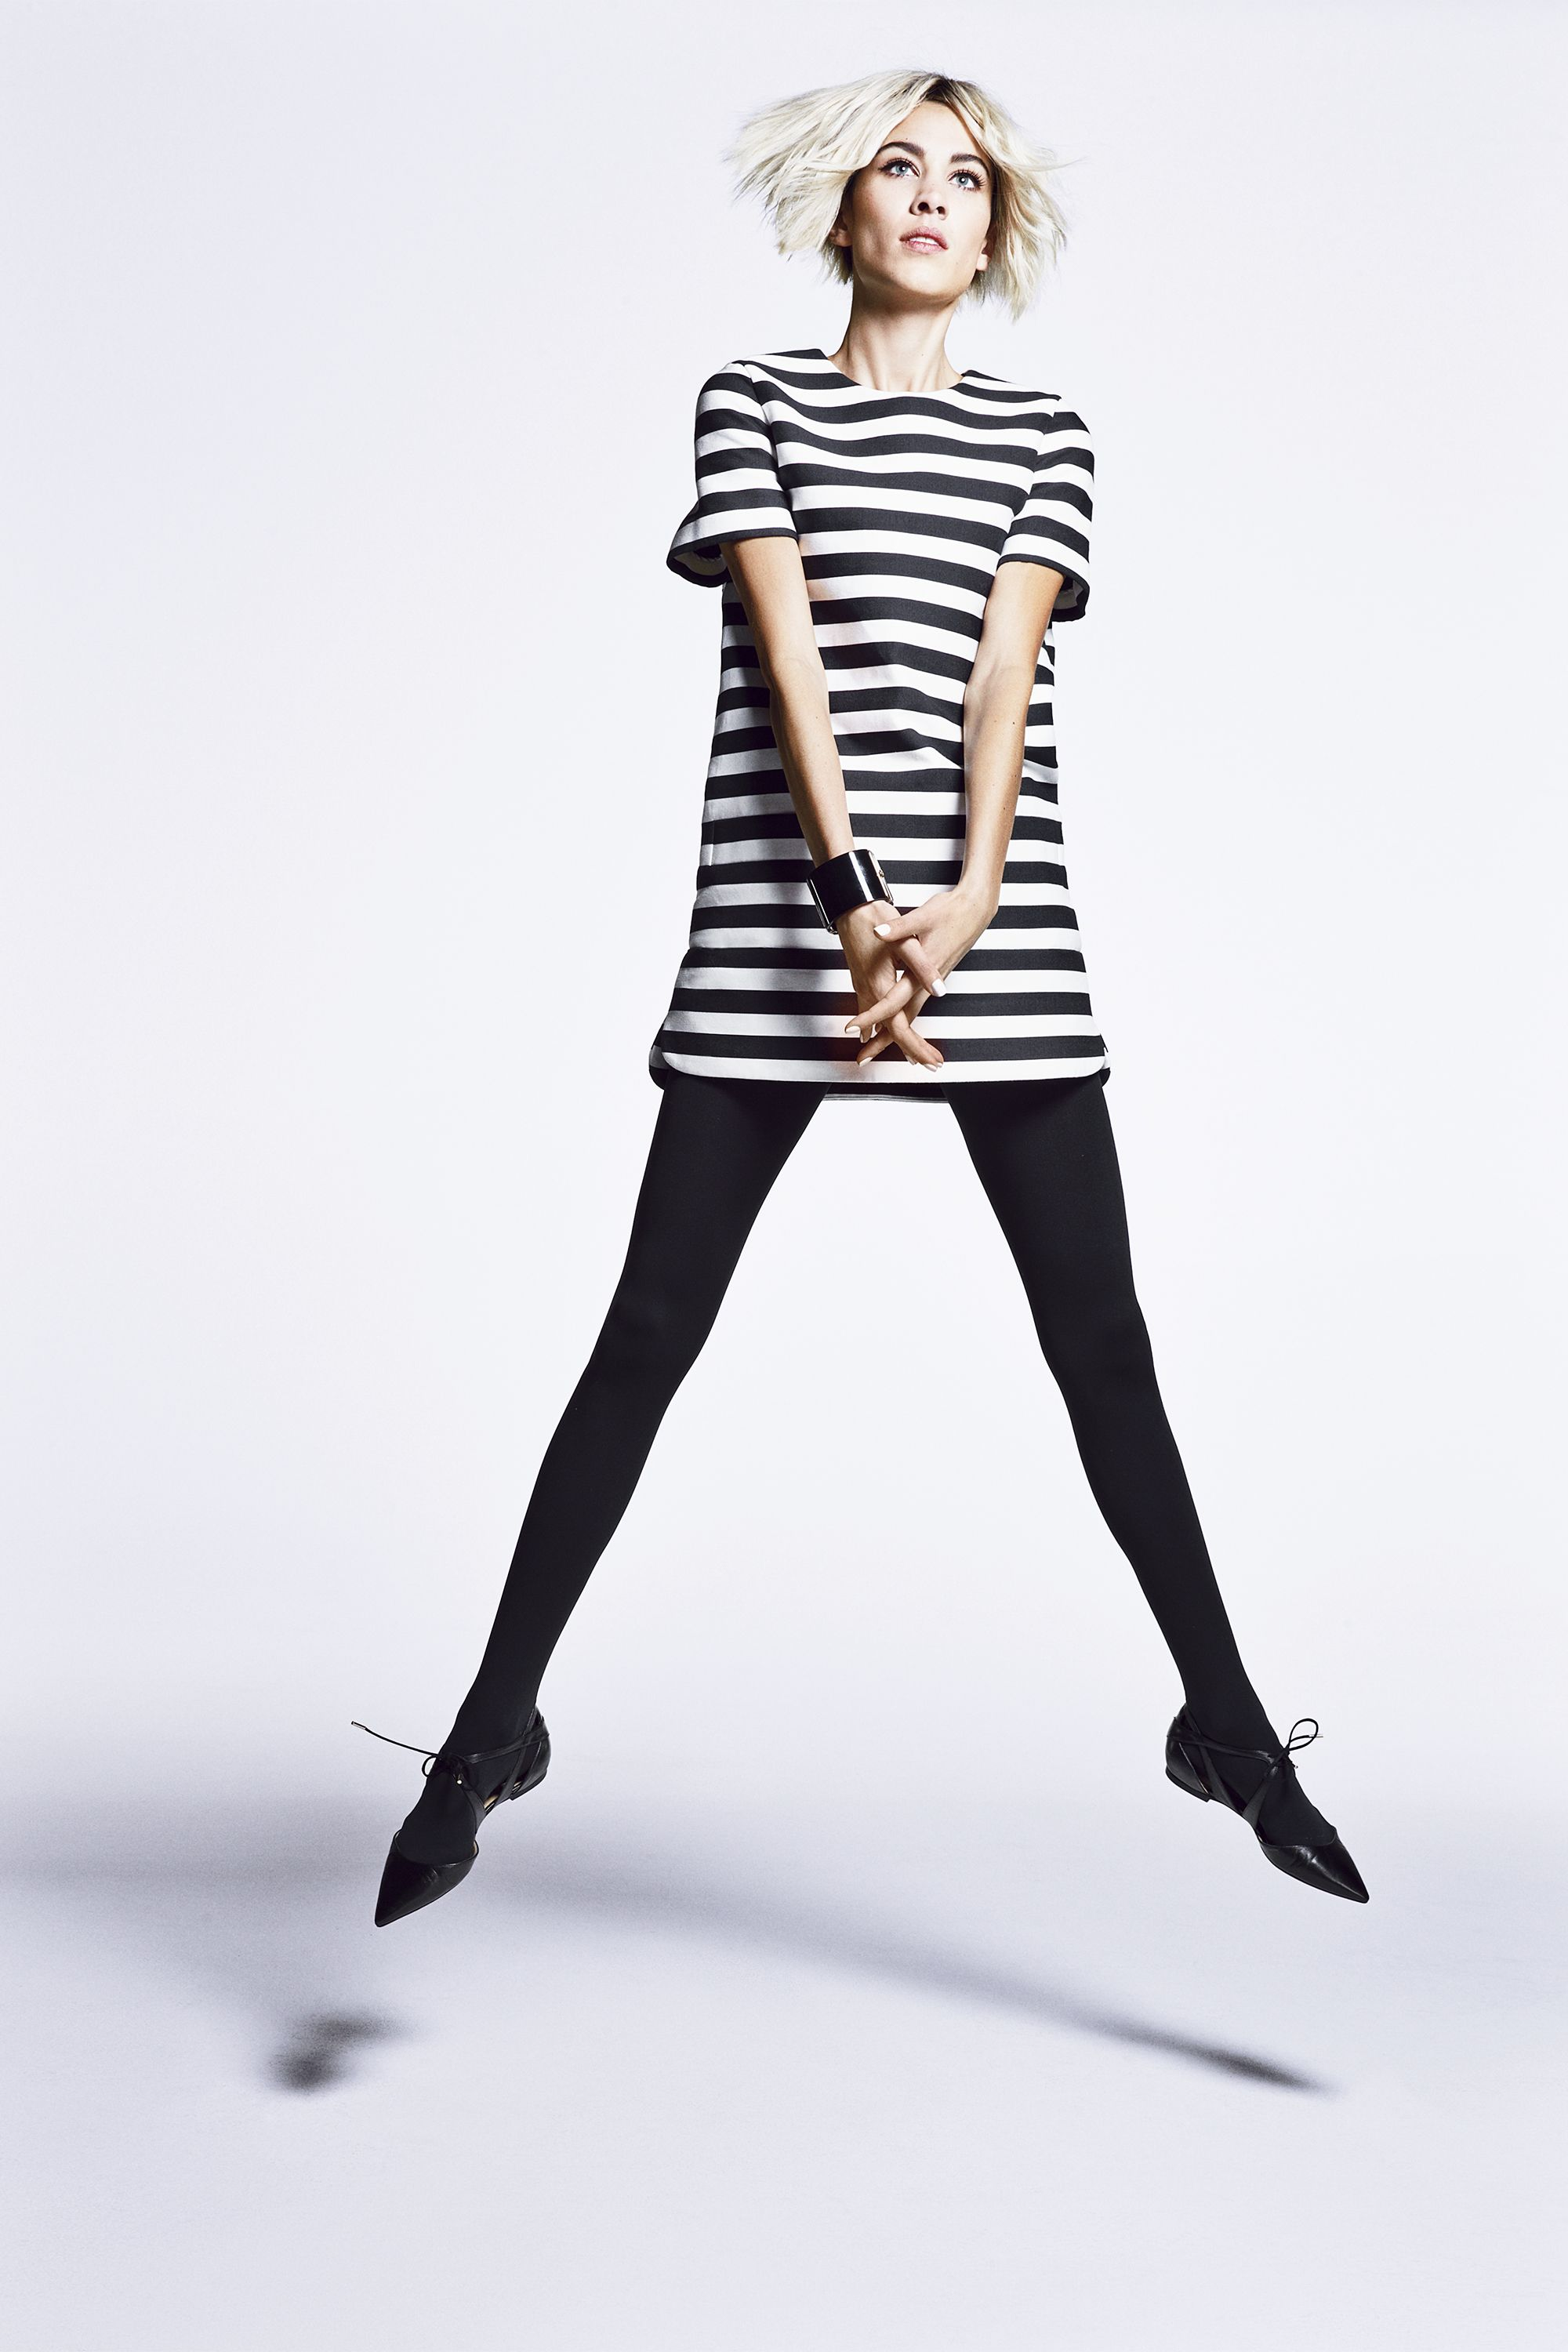 """<strong>Kate Spade New York</strong> dress, $398, <a href=""""http://shop.nordstrom.com/s/kate-spade-new-york-stripe-shift-dress/3926787"""" target=""""_blank"""">nordstrom.com</a>; <strong>Chanel</strong> bracelet, $1,850, Nordstrom, 800-695-8000;<strong>Wolford </strong>tights, $55, <a href=""""http://shop.nordstrom.com/s/wolford-matte-opaque-tights/3253809?origin=PredictiveSearchProducts"""" target=""""_blank"""">nordstrom.com</a>;<strong>Jimmy Choo</strong> shoes, $795,<a href=""""http://us.jimmychoo.com/en/women/shoes/flats/mardi/black-patent-and-white-textured-leather-brogues-143mardiptx.html?cgid=women-shoes-flats#dwvar_143mardiptx_color=Black/White&start=1&searchgridpos=1&srule=Merchandising Default"""">jimmychoo.com</a>."""